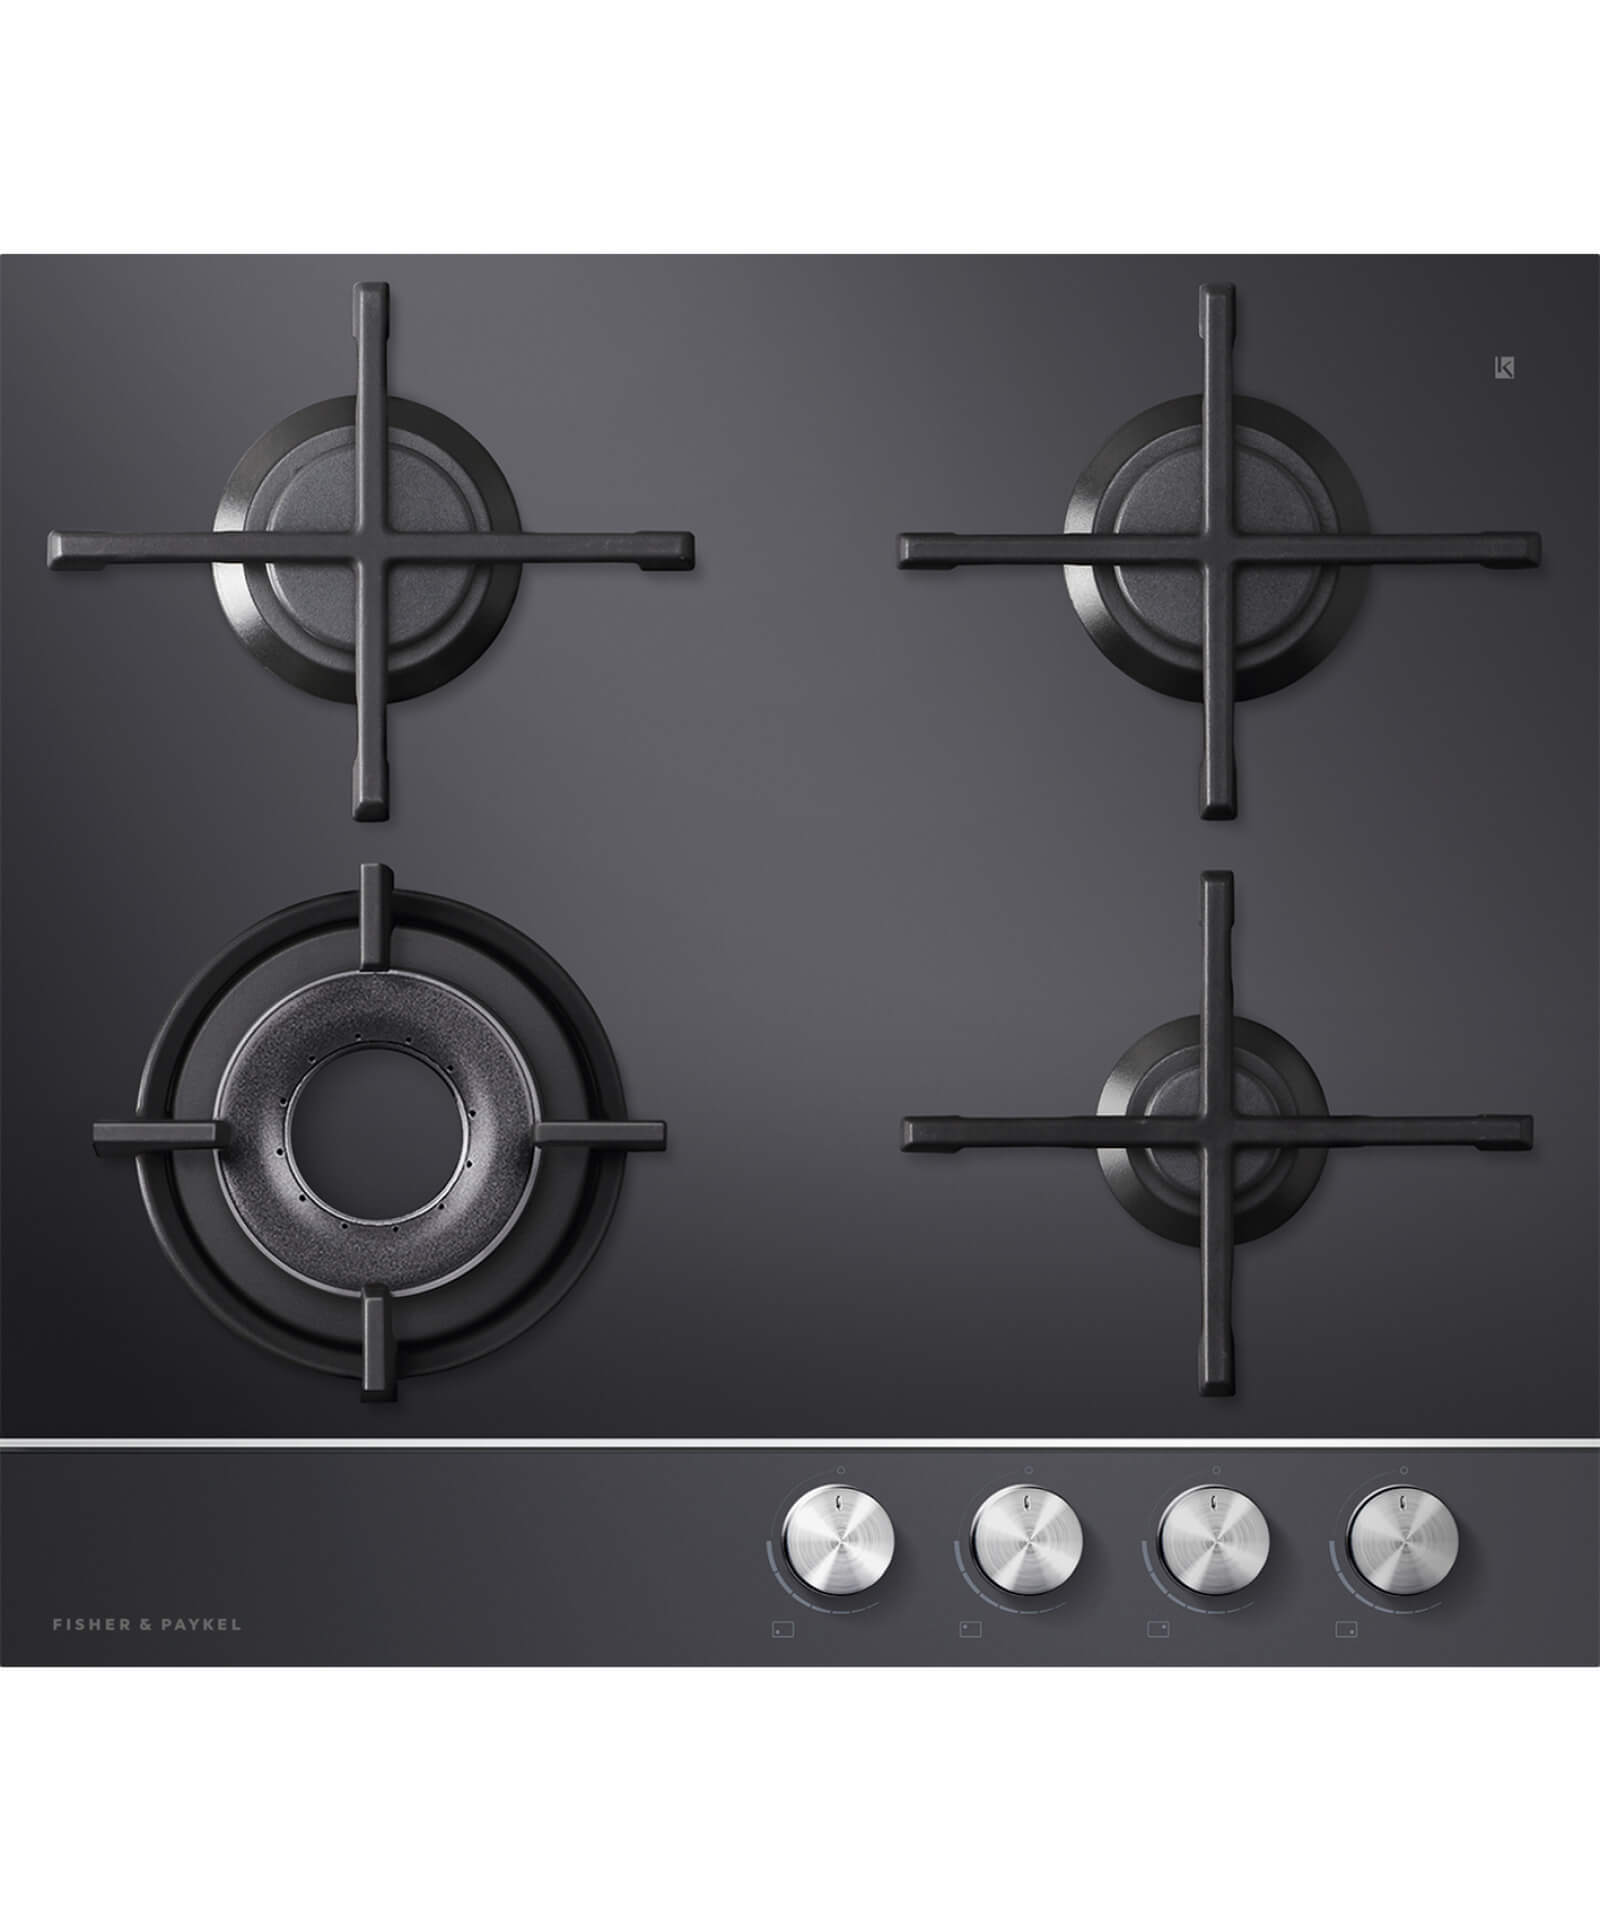 CG604DLPGB1 - 60cm Gas on Glass Cooktop - 81384